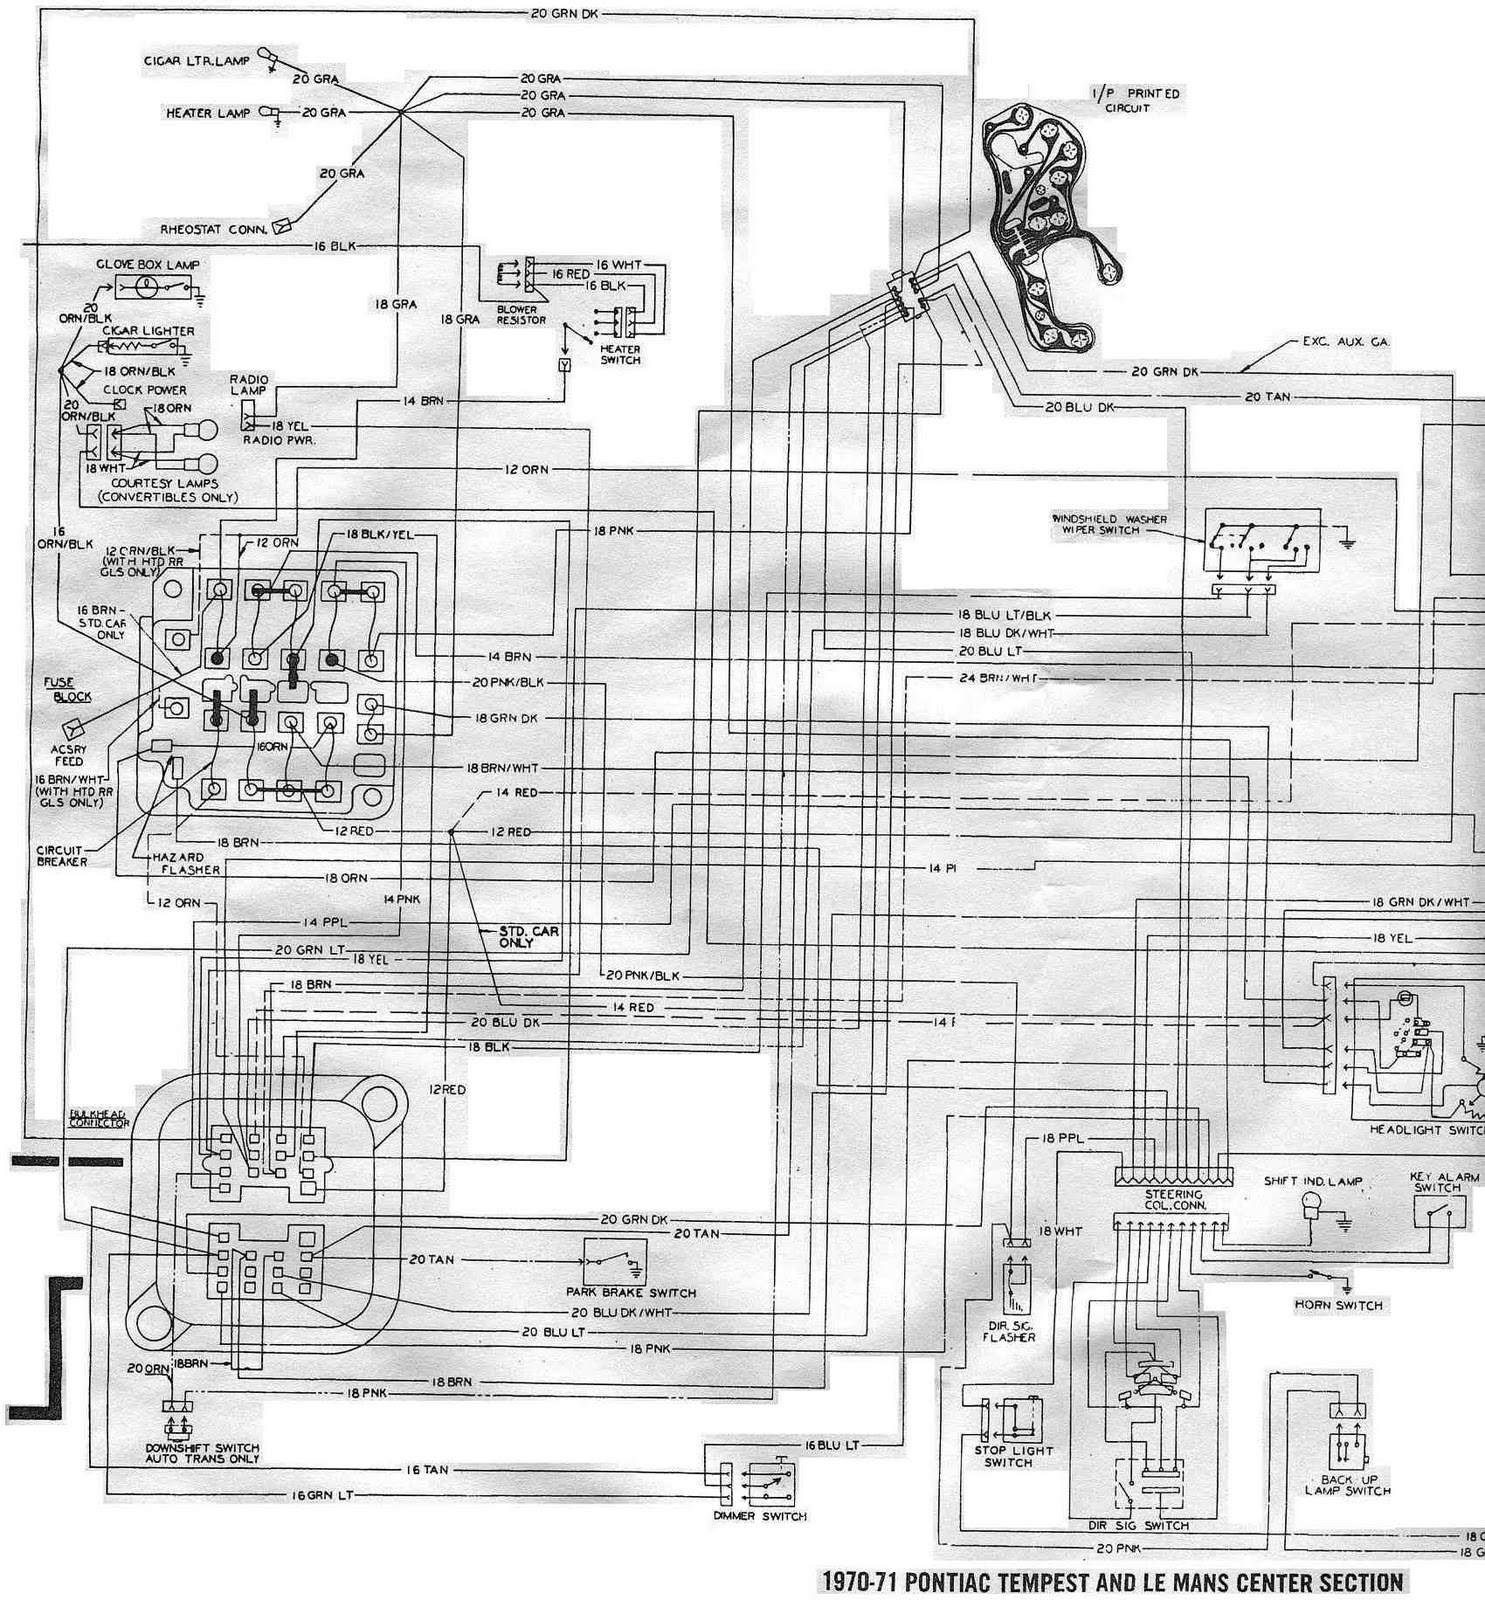 1979 Pontiac Trans Am Wiring Diagrams On 67 Gto Tach Wiring Diagram